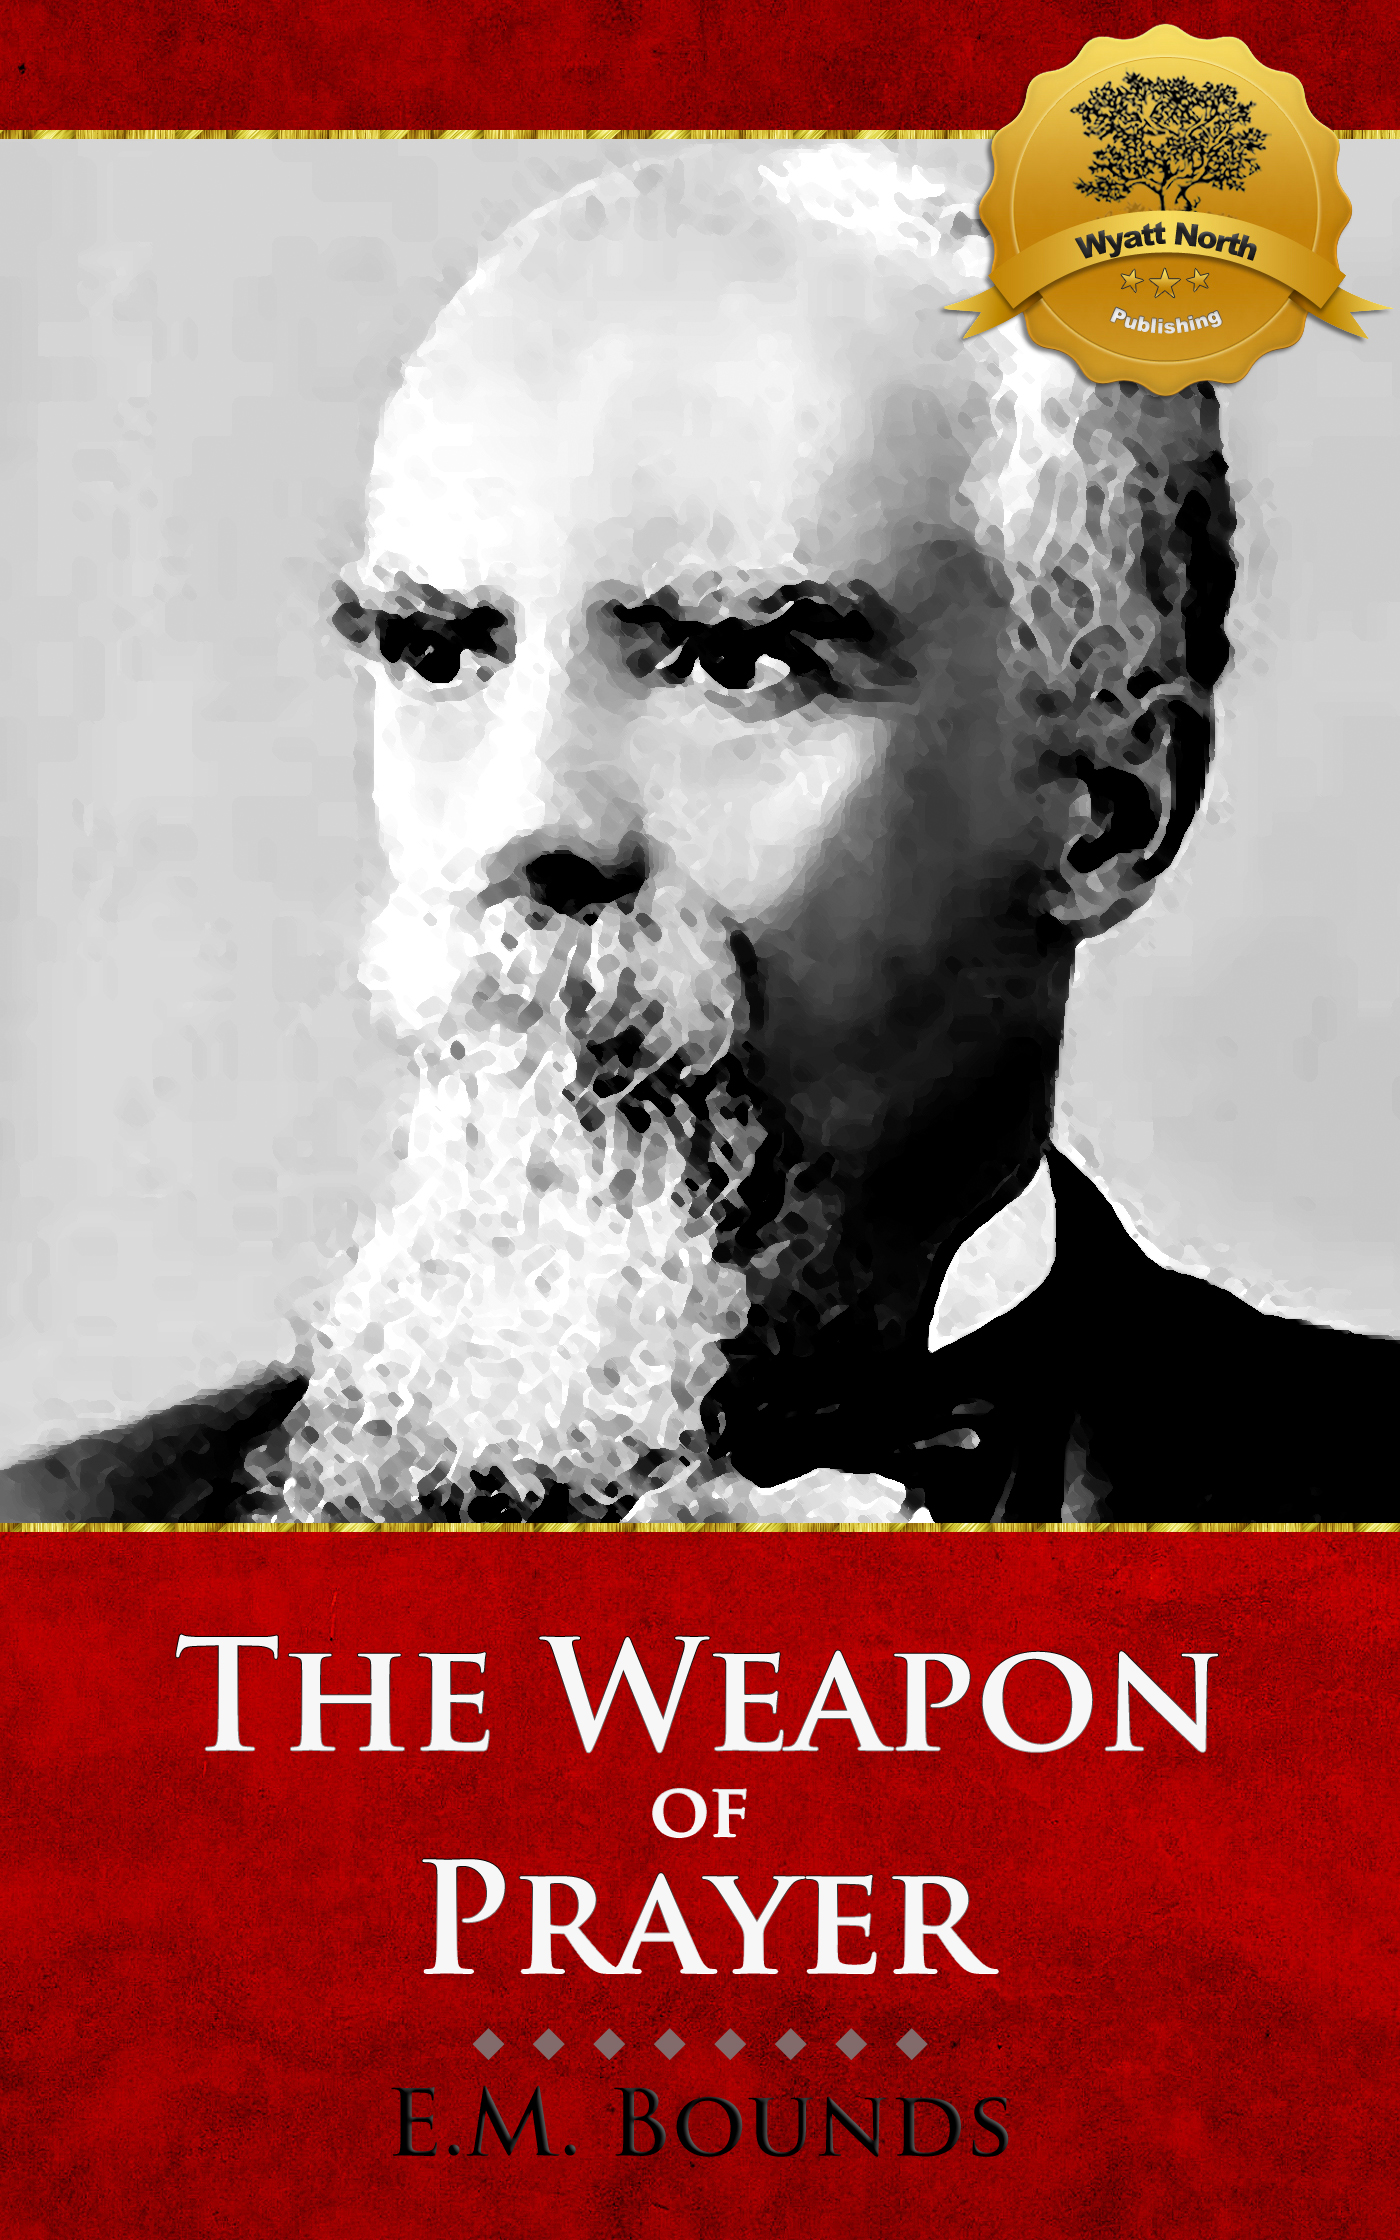 The Weapon of Prayer By: E.M. Bounds, Wyatt North